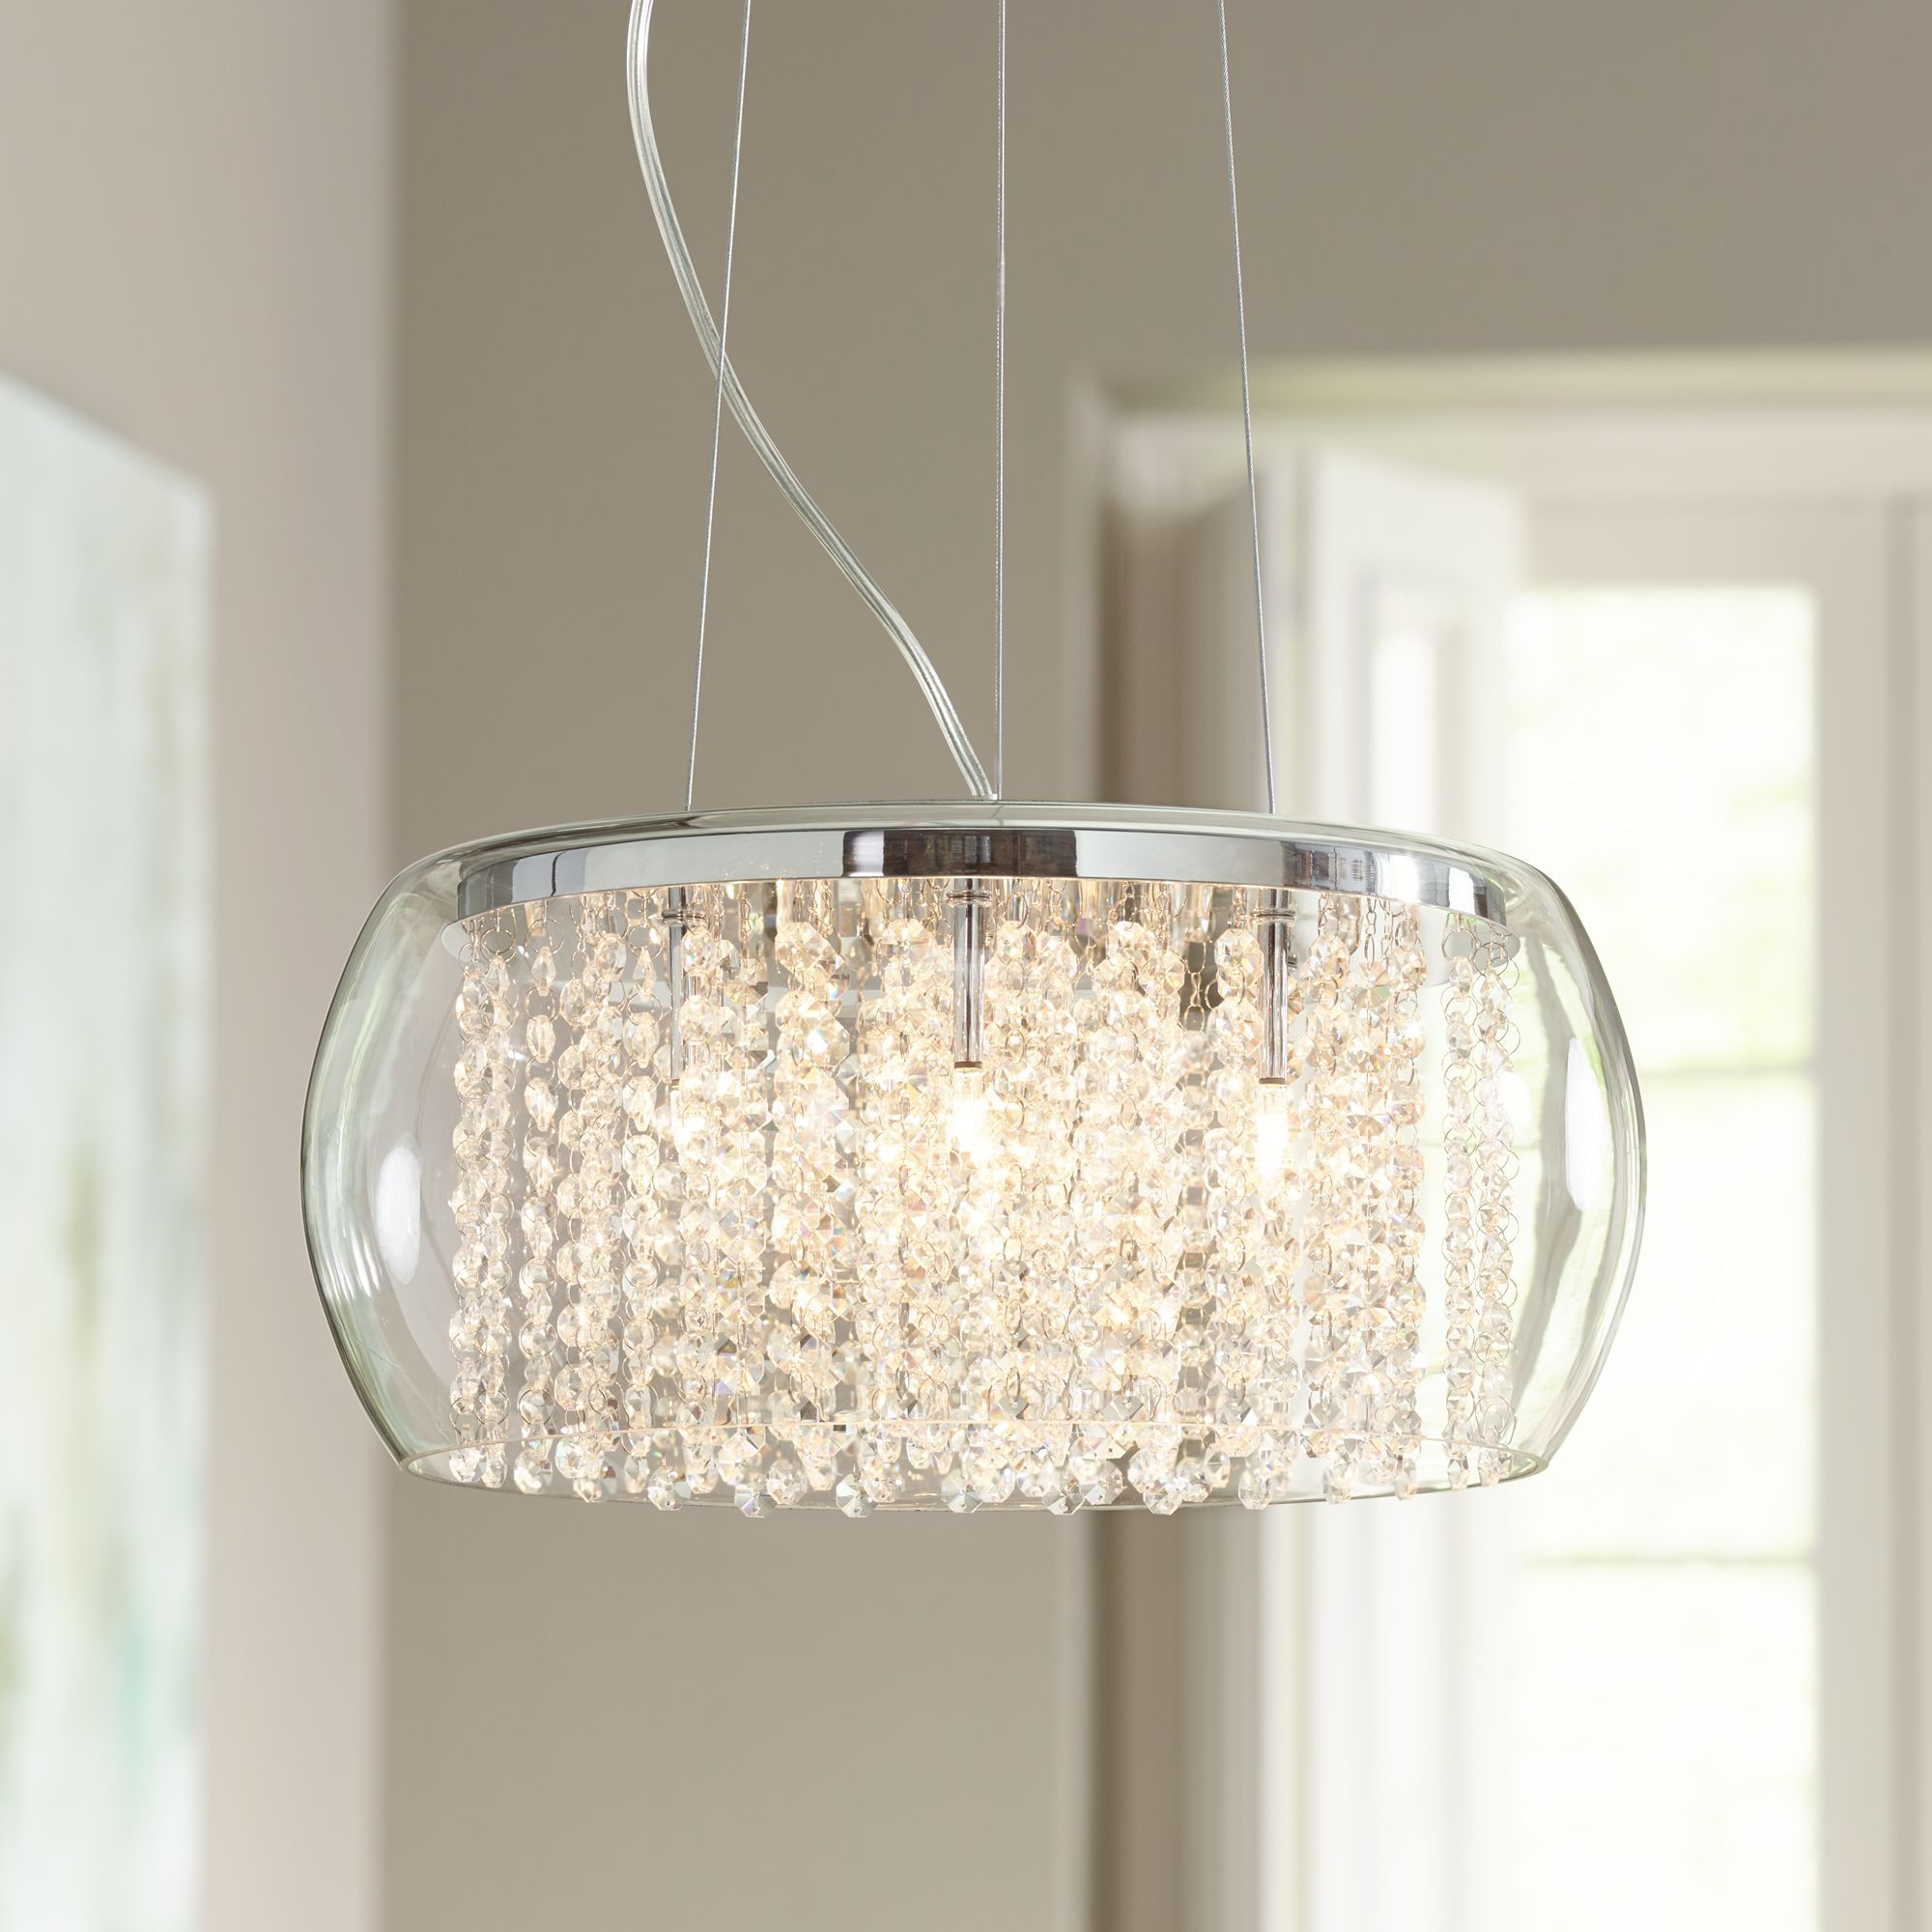 Possini euro design rainfall glass drum crystal chandelier possini euro design rainfall glass drum crystal chandelier euu0694 euro style lighting aloadofball Images